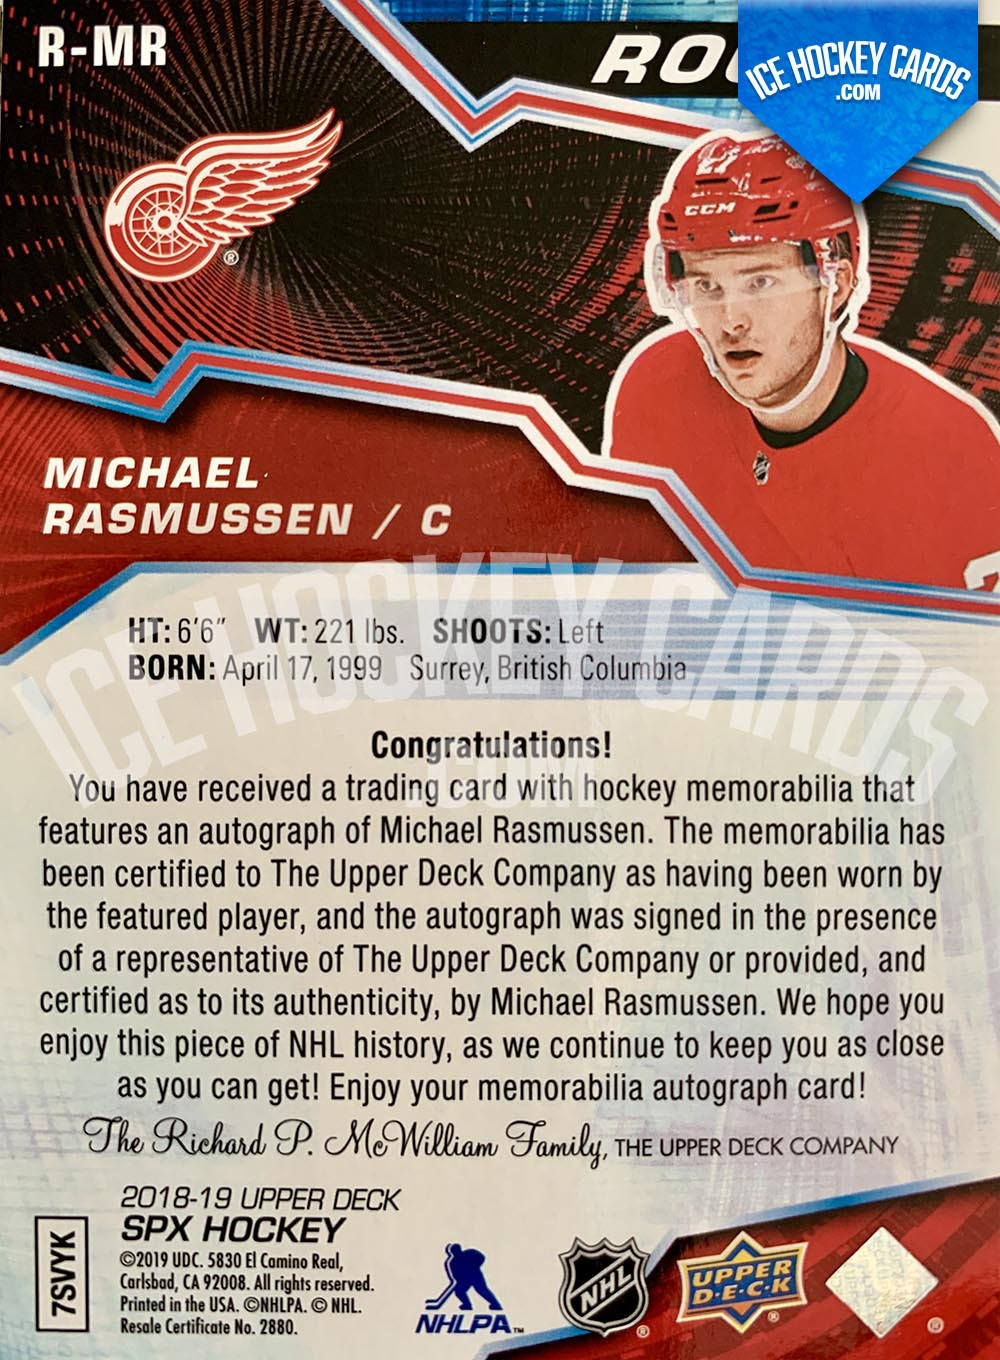 Upper Deck - SPx 2018-19 - Michael Rasmussen Rookie Auto Patch Card # to 49 back